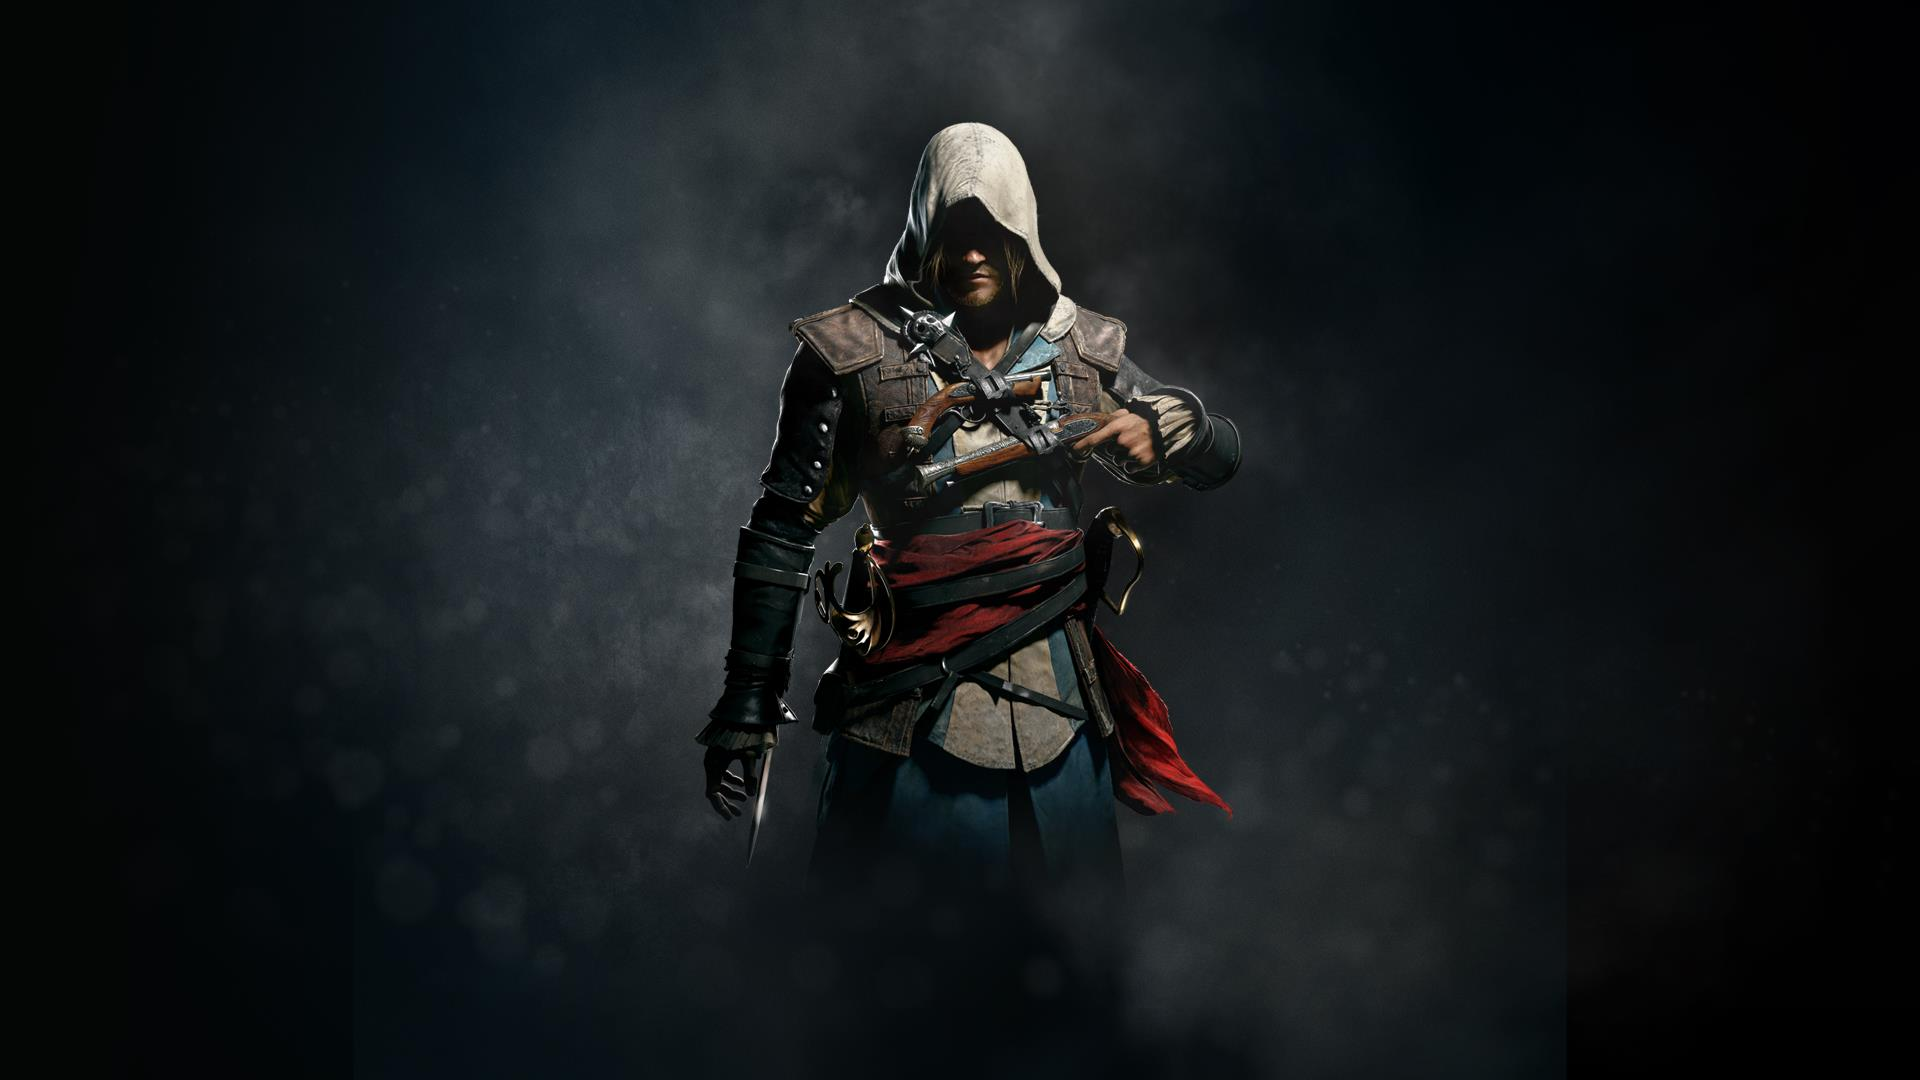 Devil Of The Caribbean in Assassin's Creed IV: Black Flag